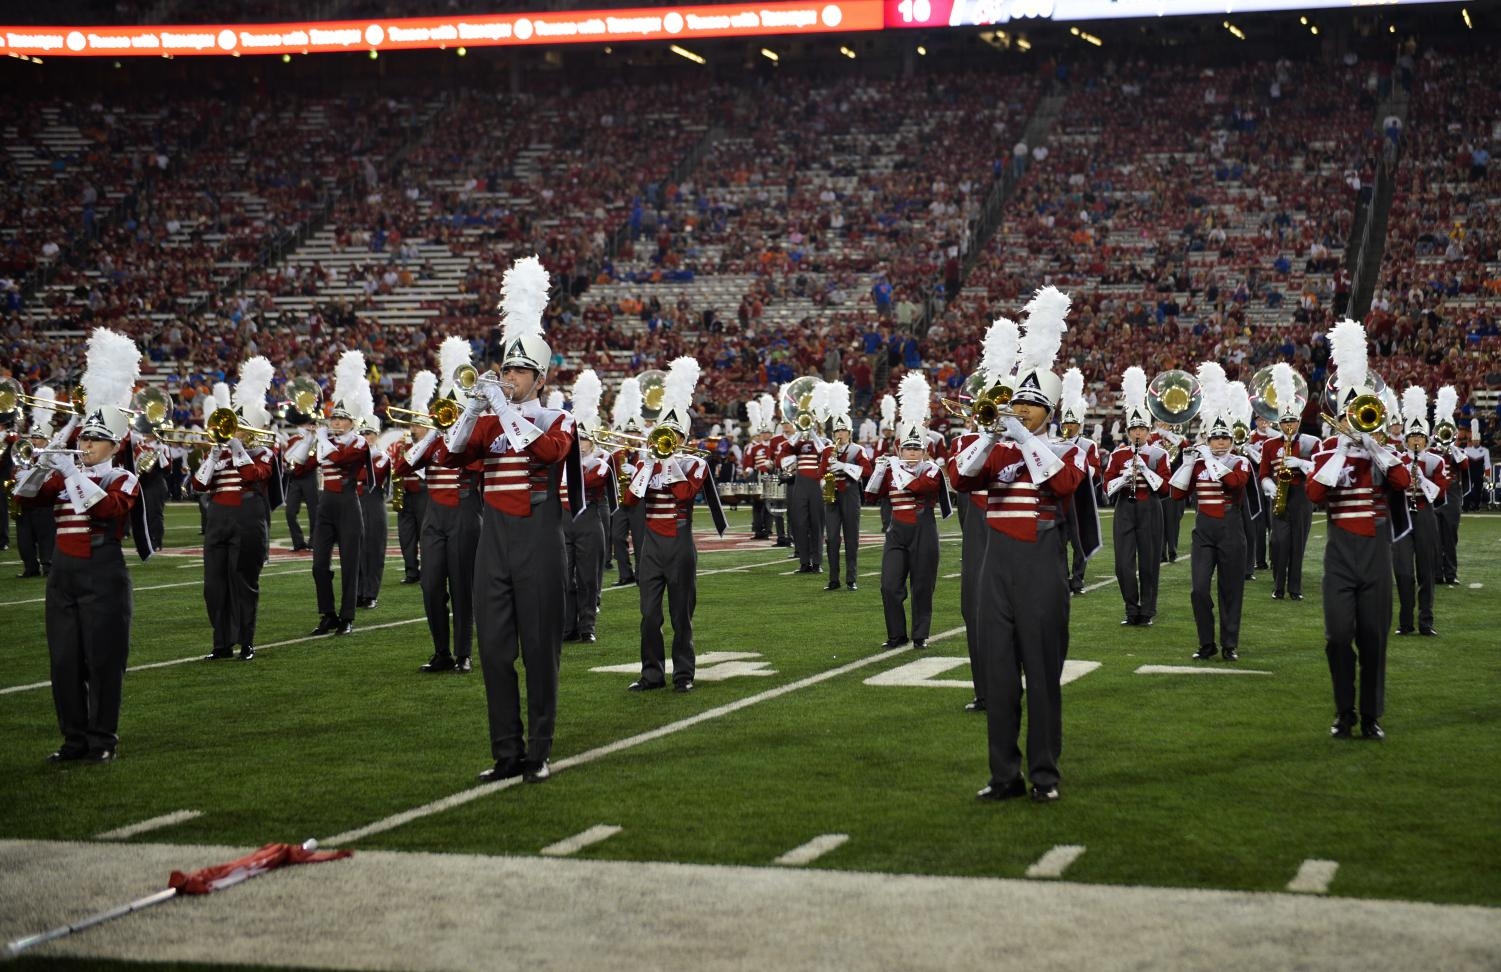 The WSU Cougar Marching Band performs at halftime during the football game against Boise State  on Sept. 9 at Martin Stadium. It received a 2.5-percent cut from its S&A fees request.